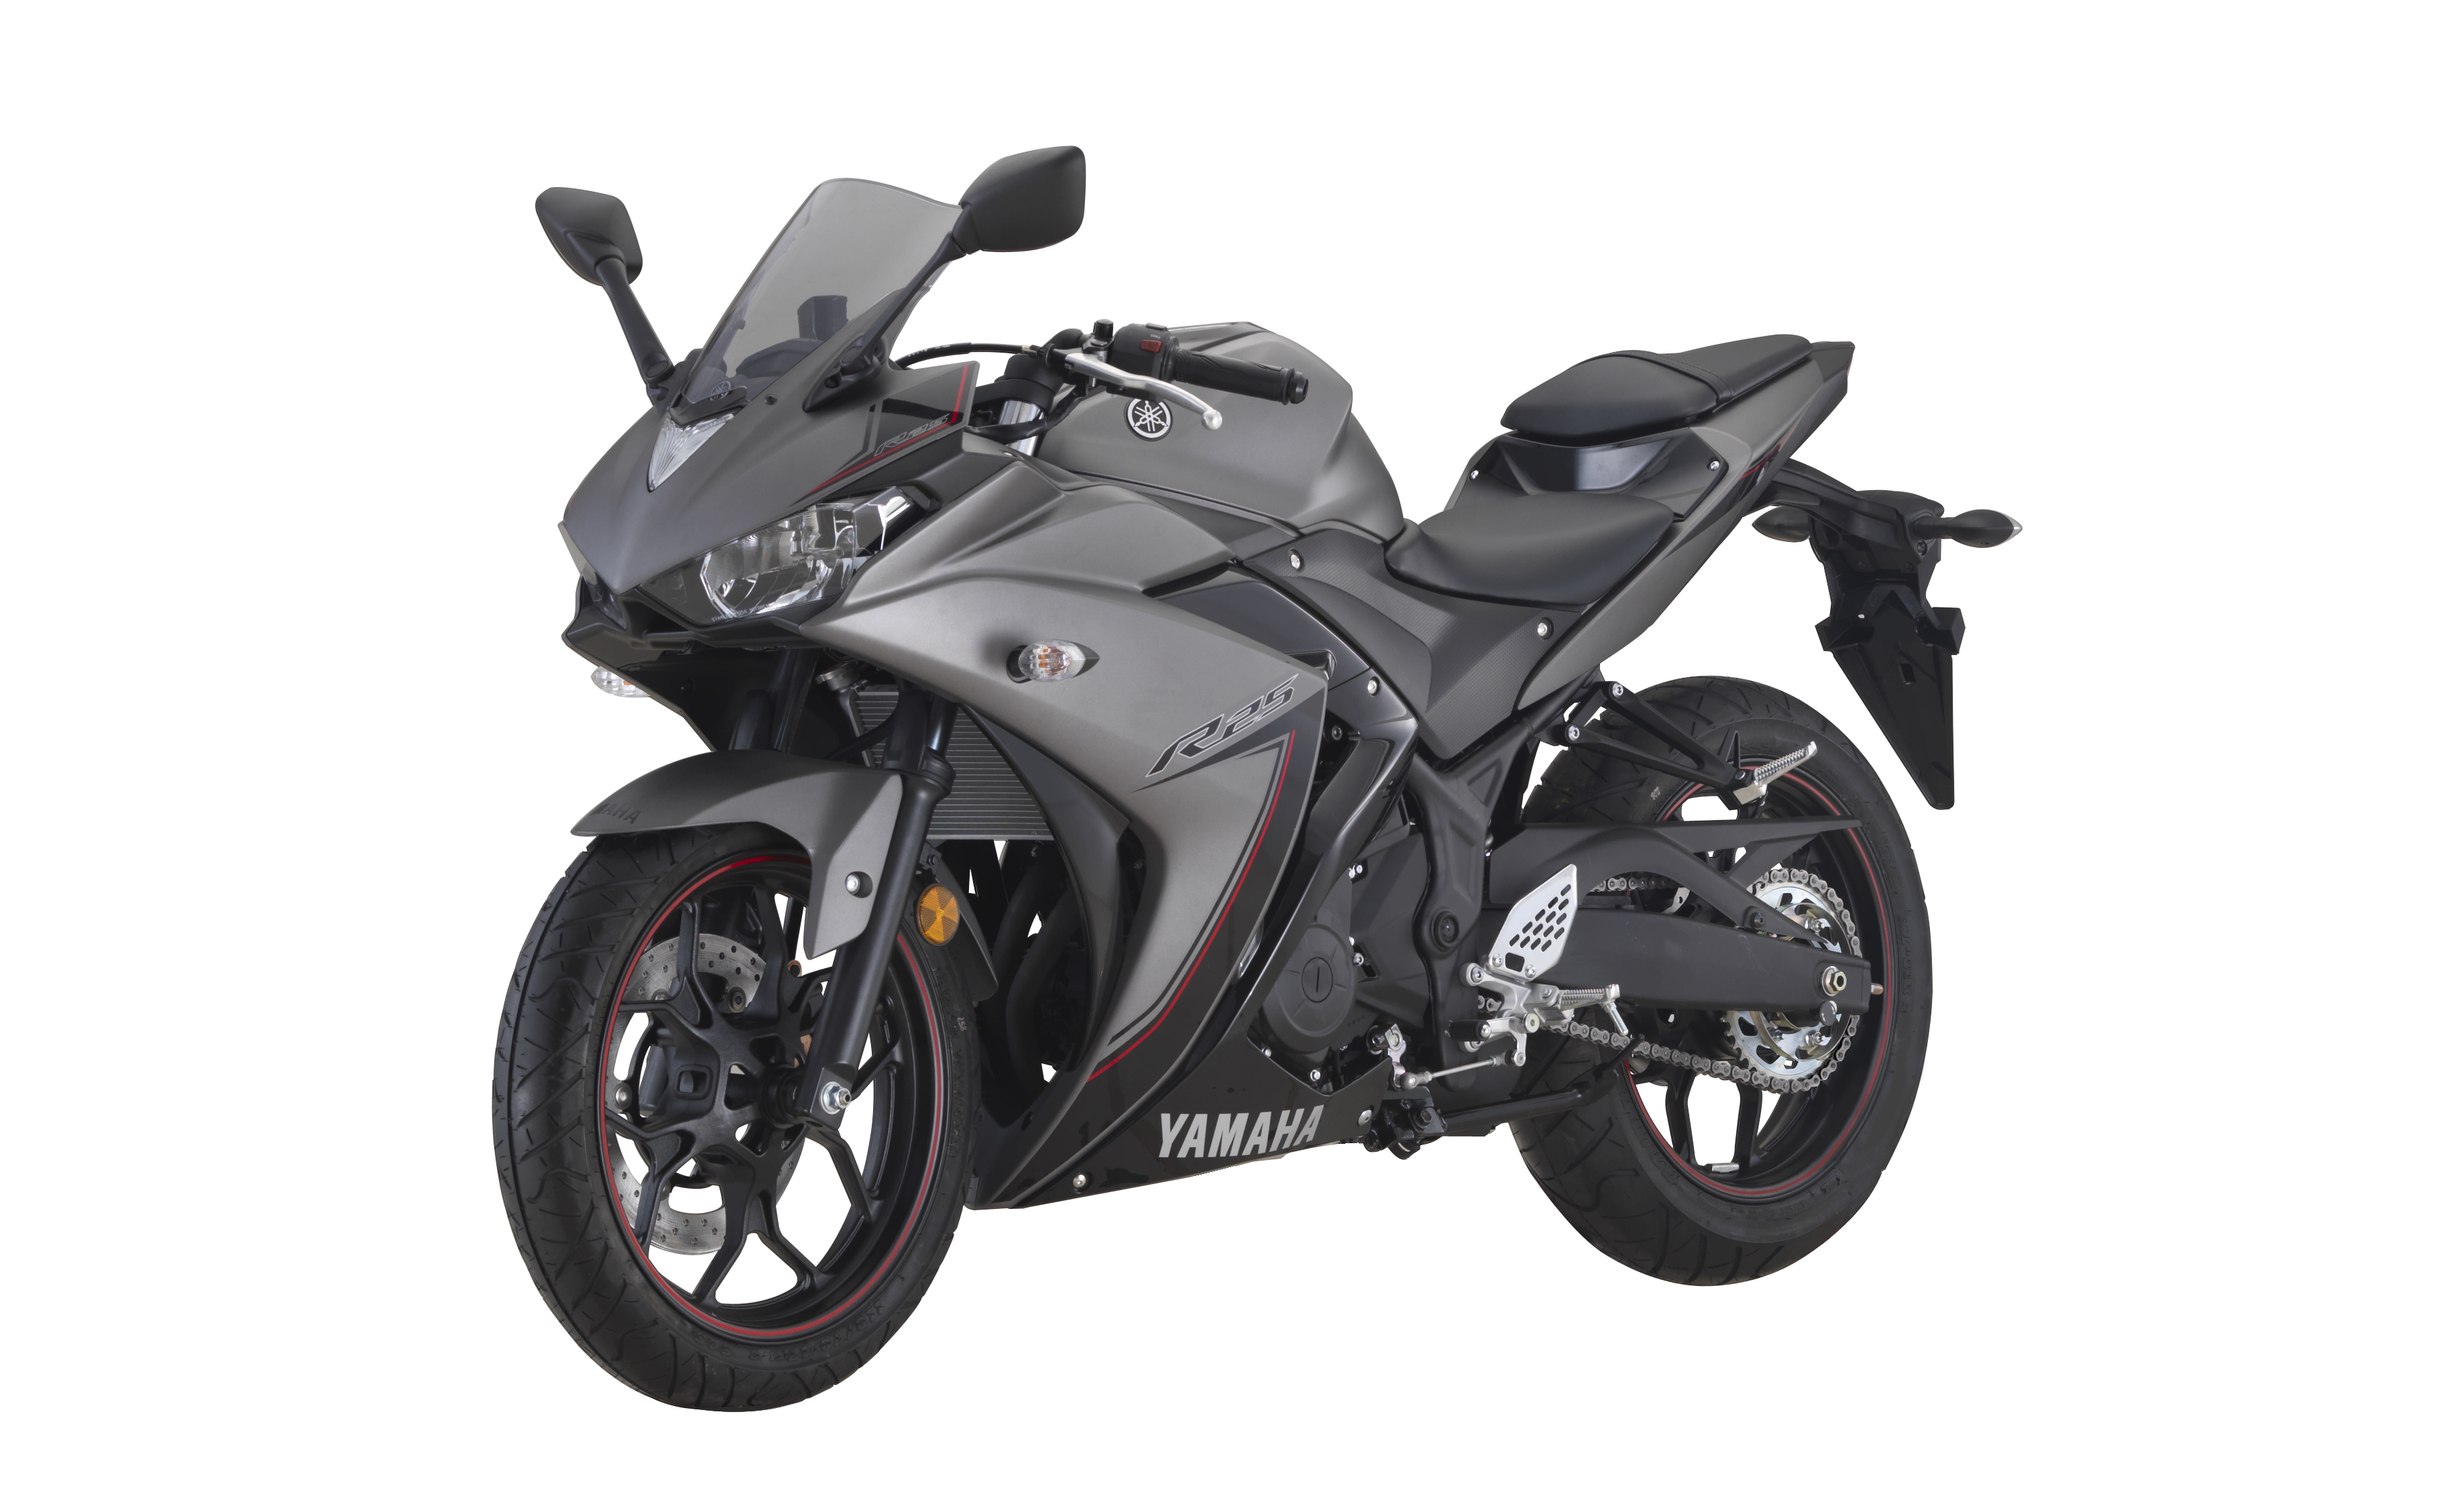 2016 yamaha yzf r25 with new colours rm20 630 image 470686 for Yamaha yzf r25